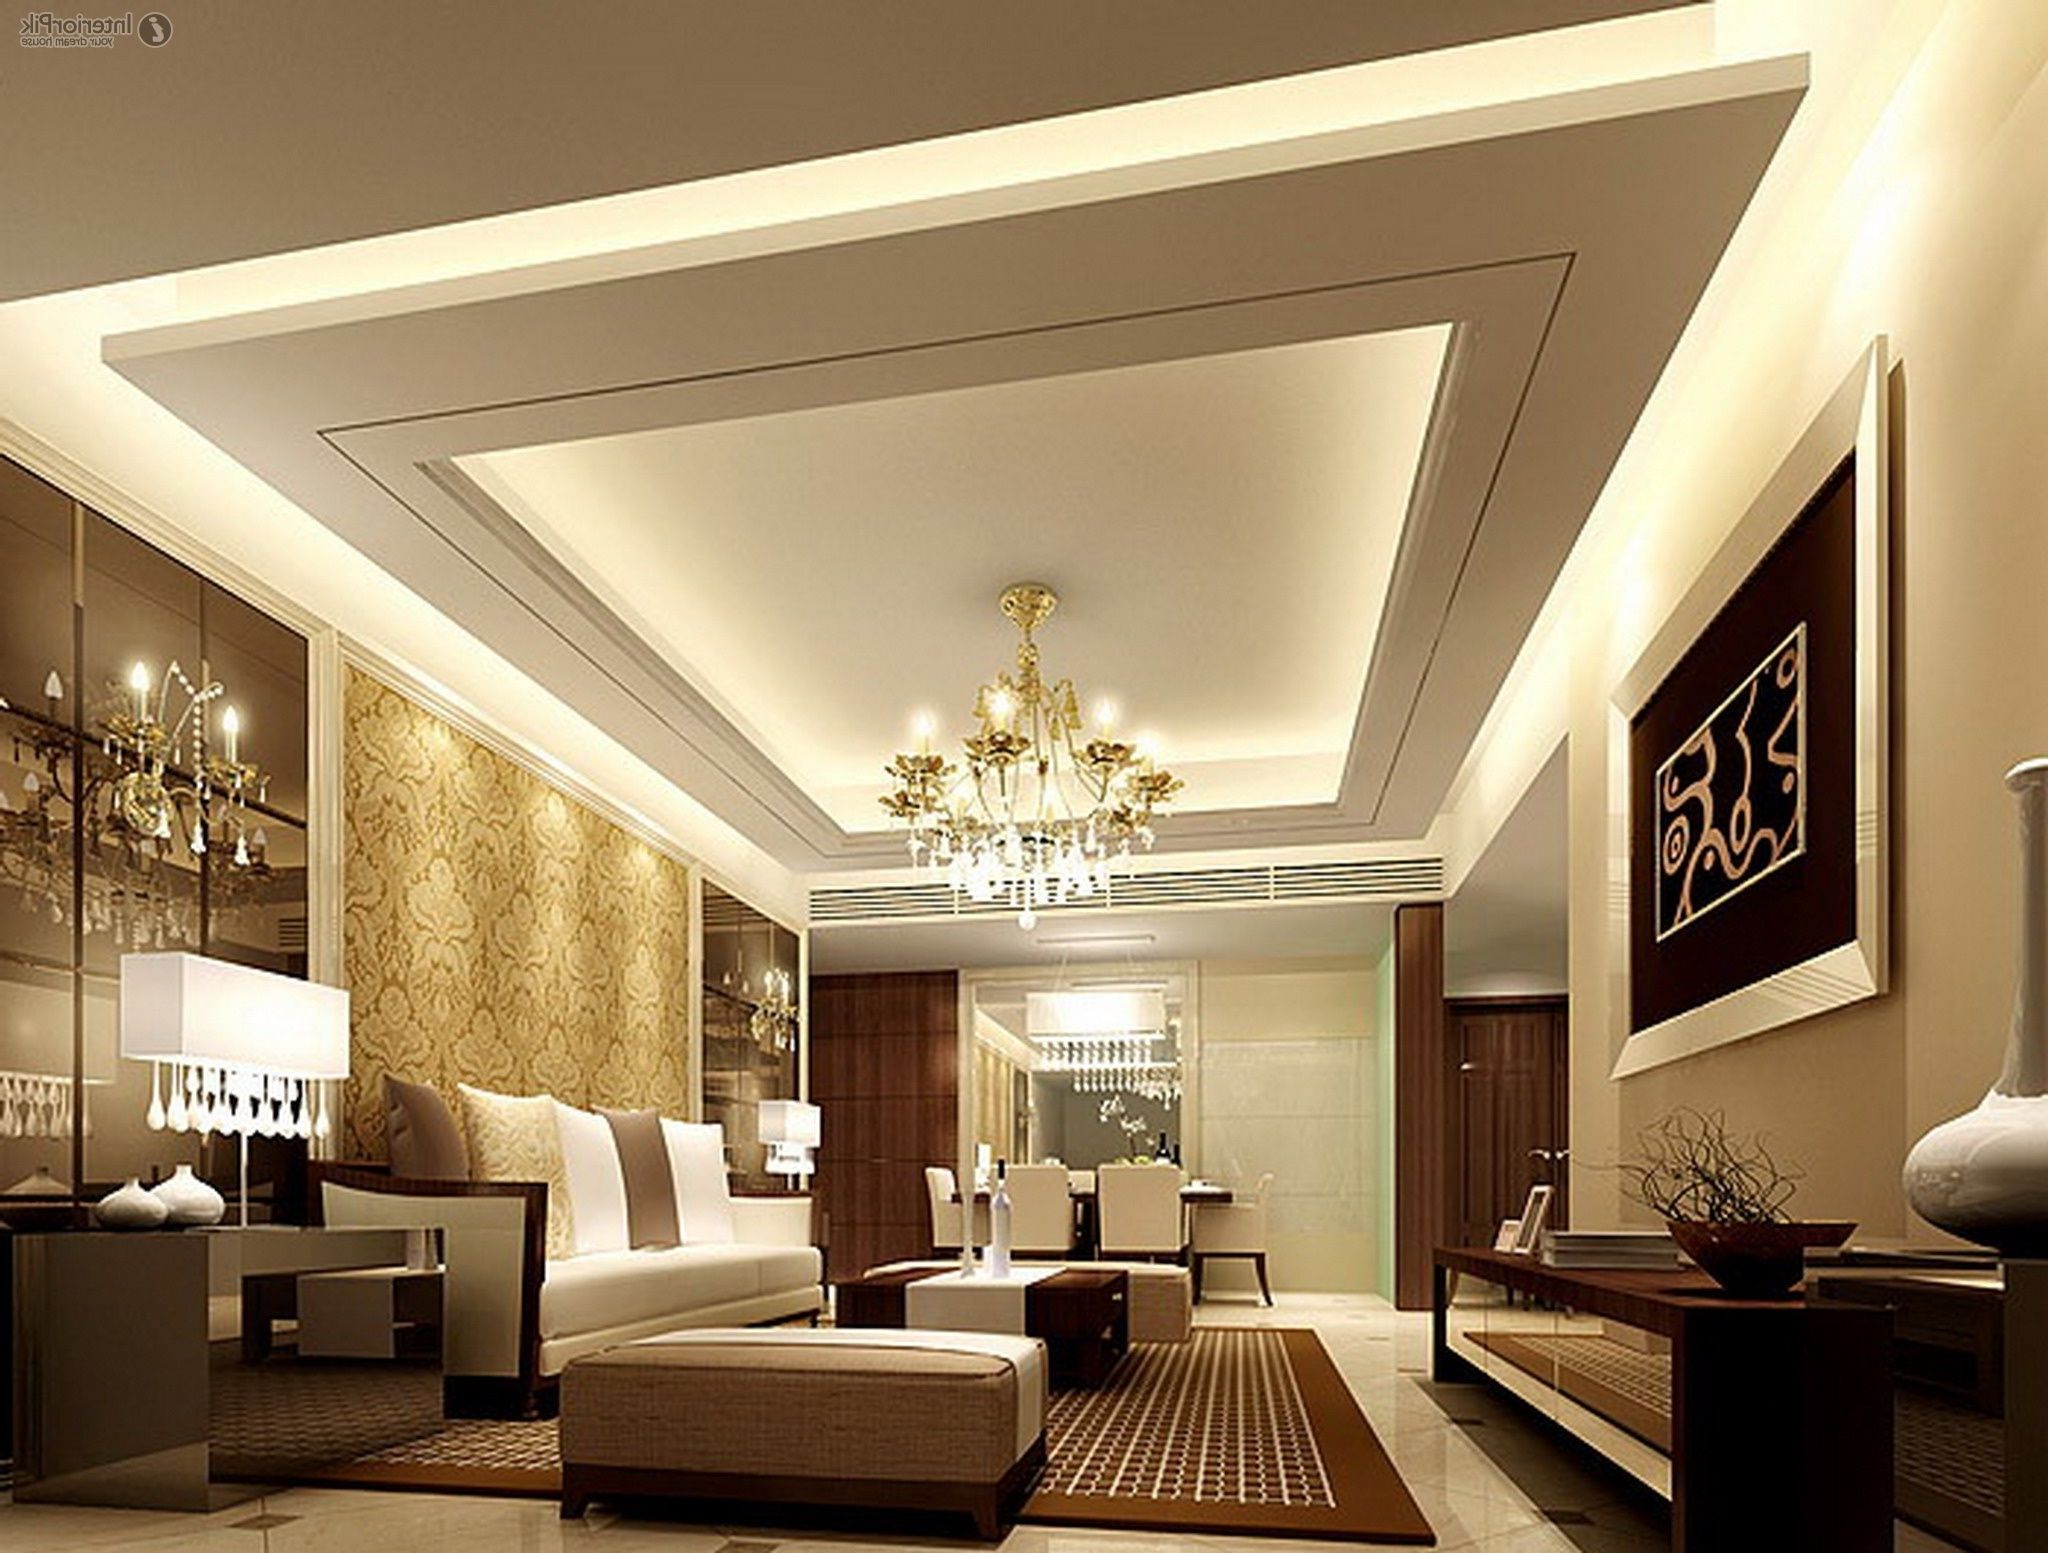 gypsum ceiling design for living room lighting home decorate best living room ceiling design - Wall Designs For Home